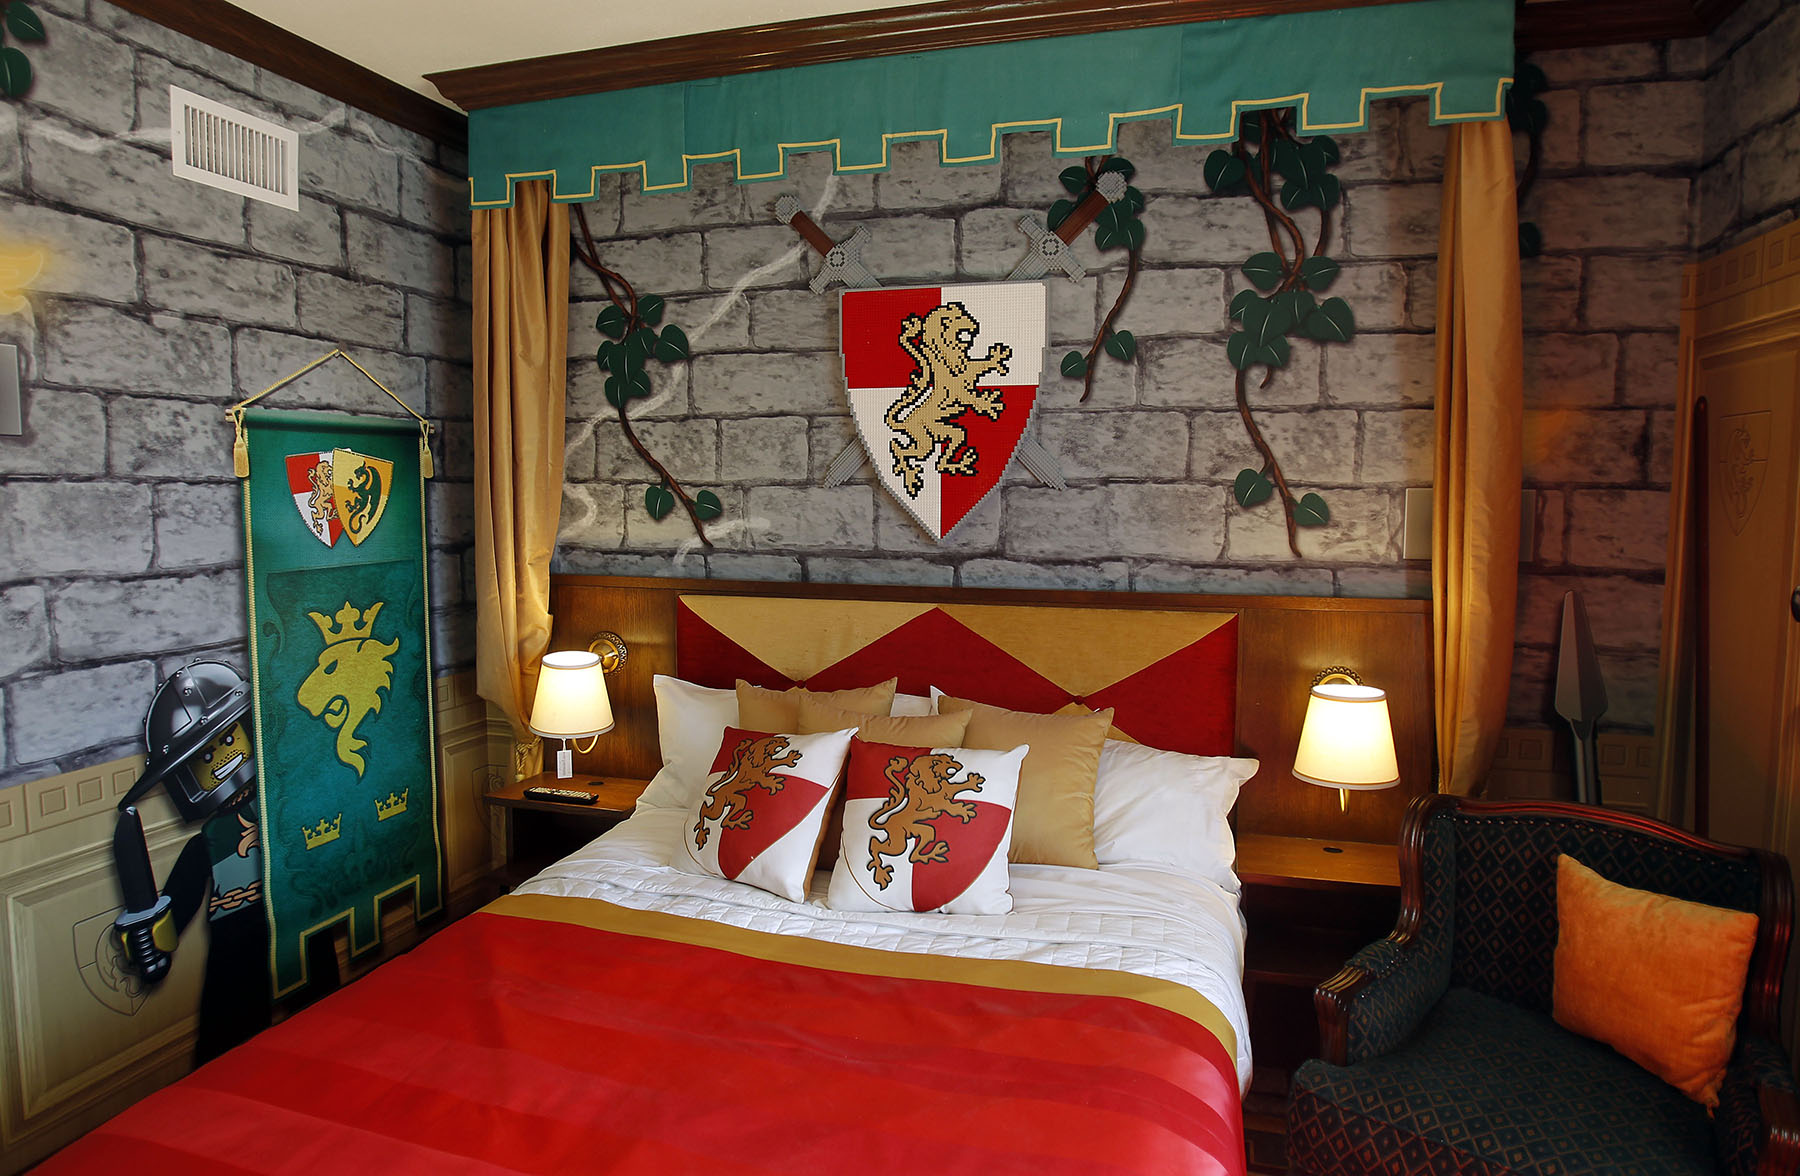 40 best lego room designs for 2017 18 digs inspired by the medieval world of lego